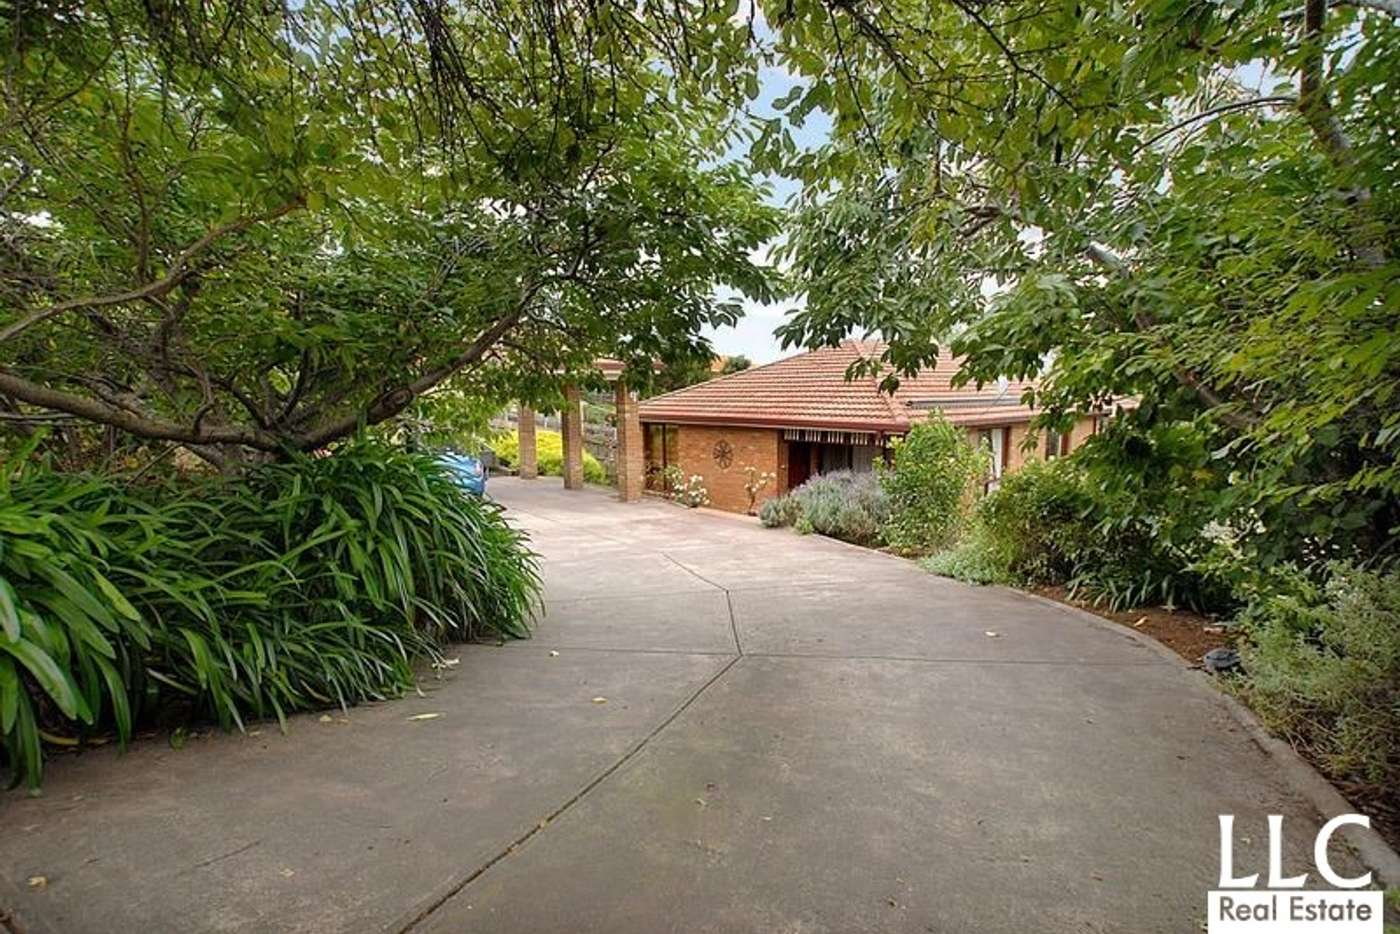 Main view of Homely house listing, 24 Bales Street, Ferntree Gully VIC 3156